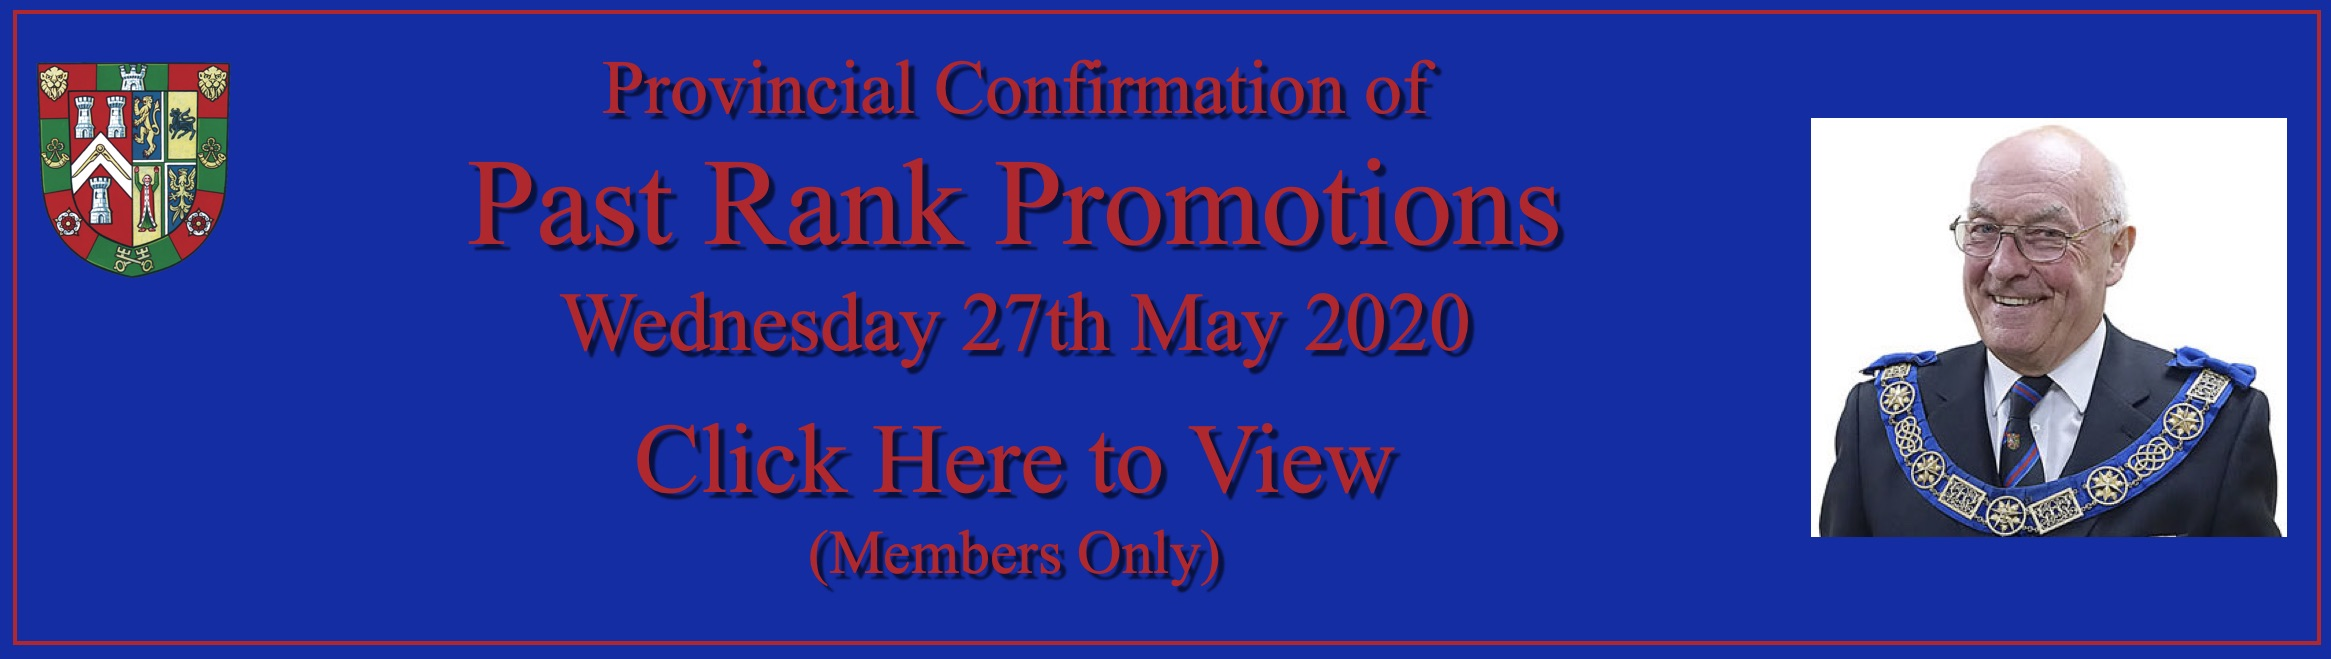 Past Rank Promotions Banner